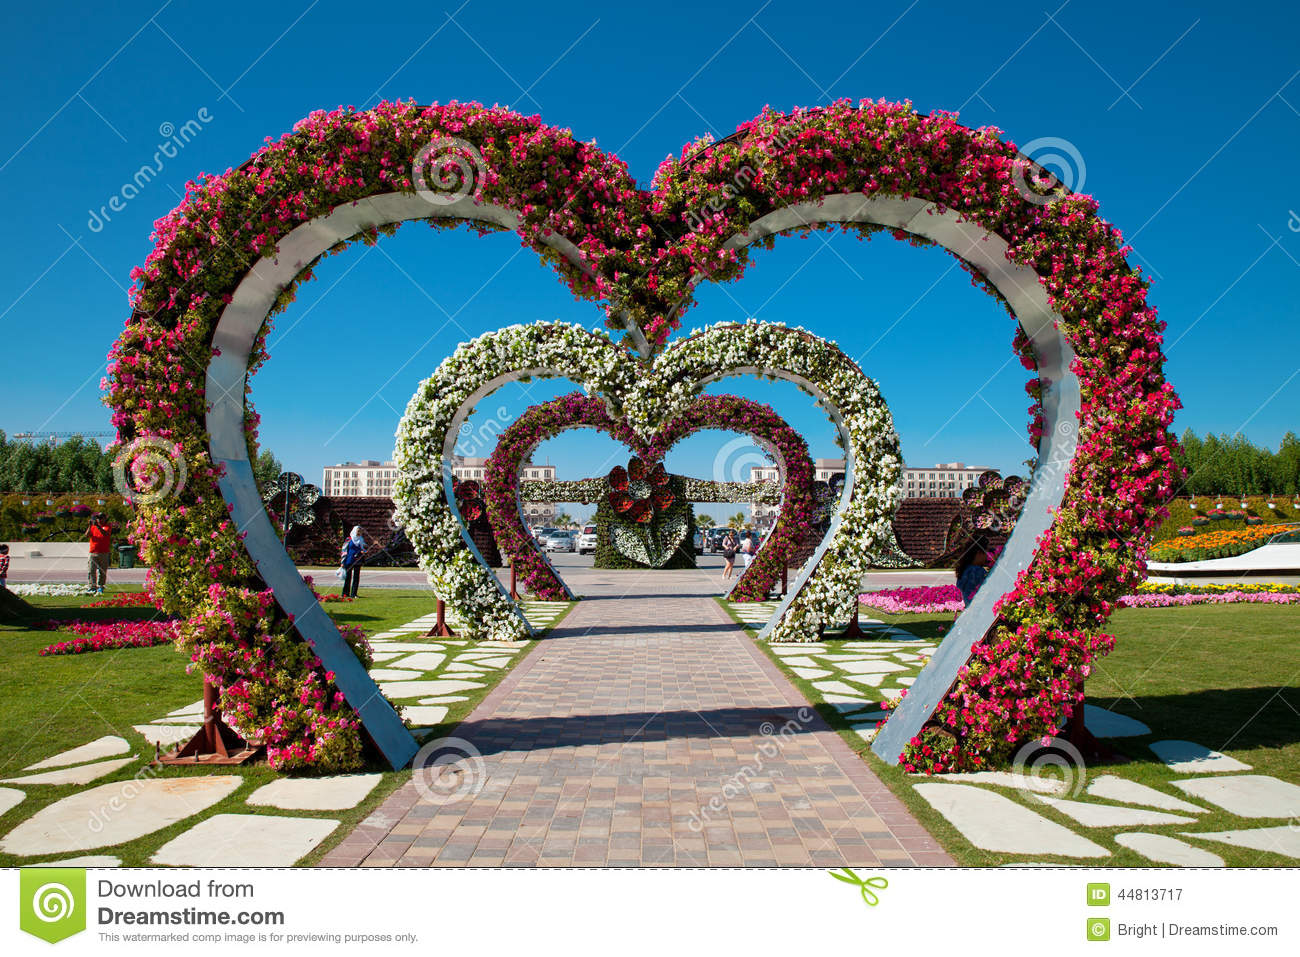 Nov. 29, 2013: Dubai, UAE - Heart shaped flower beds at the Alley of ...